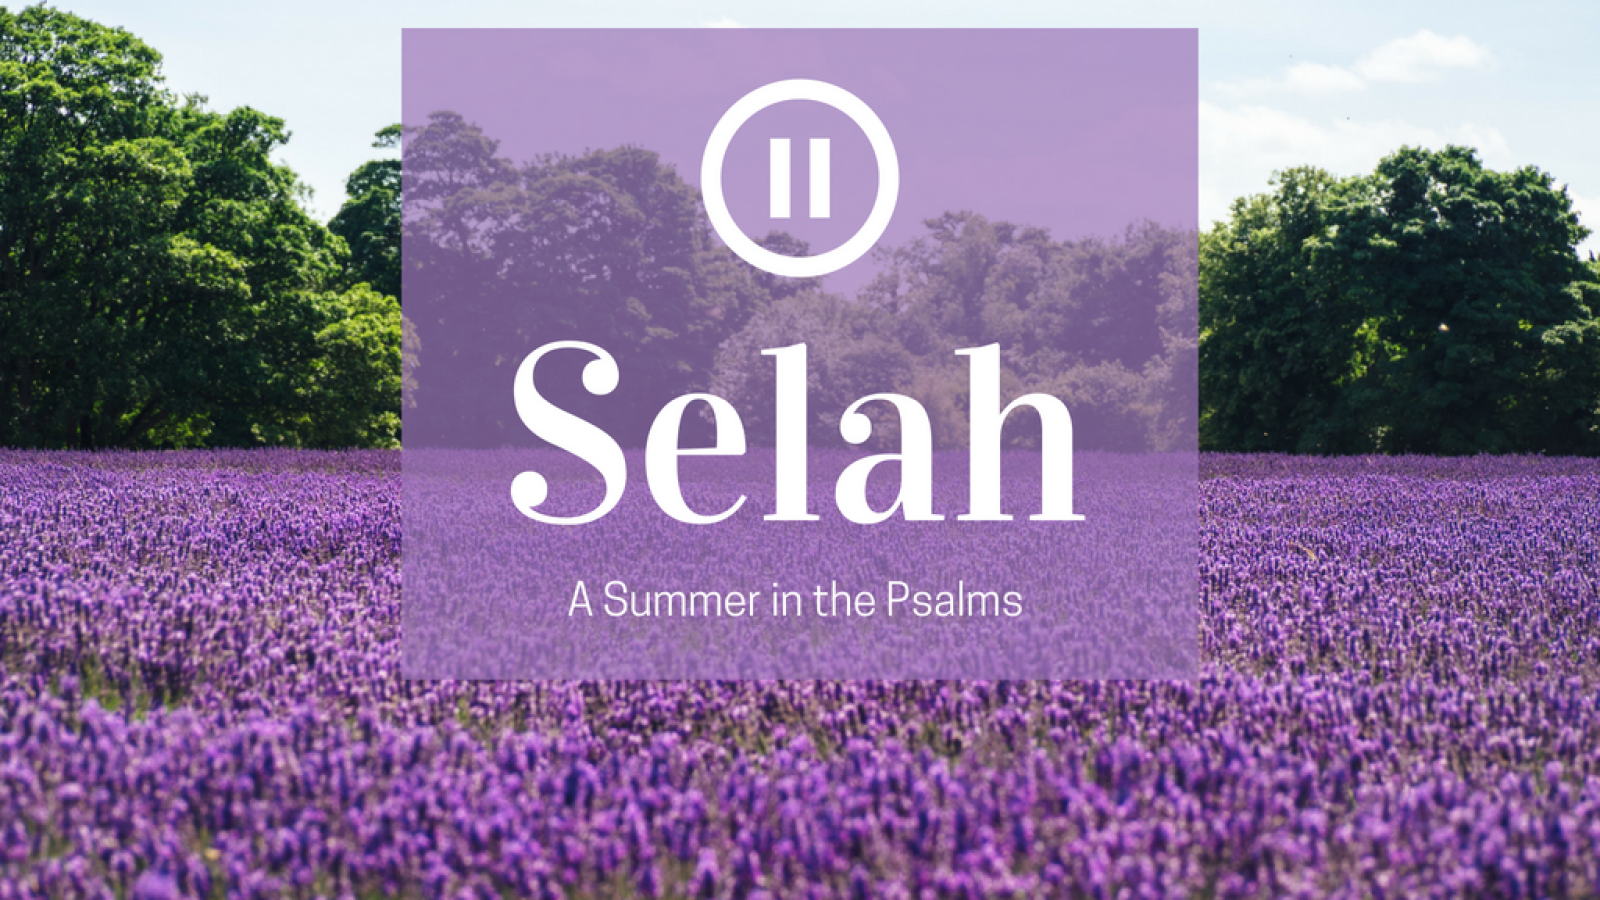 Selah: A Summer in the Psalms